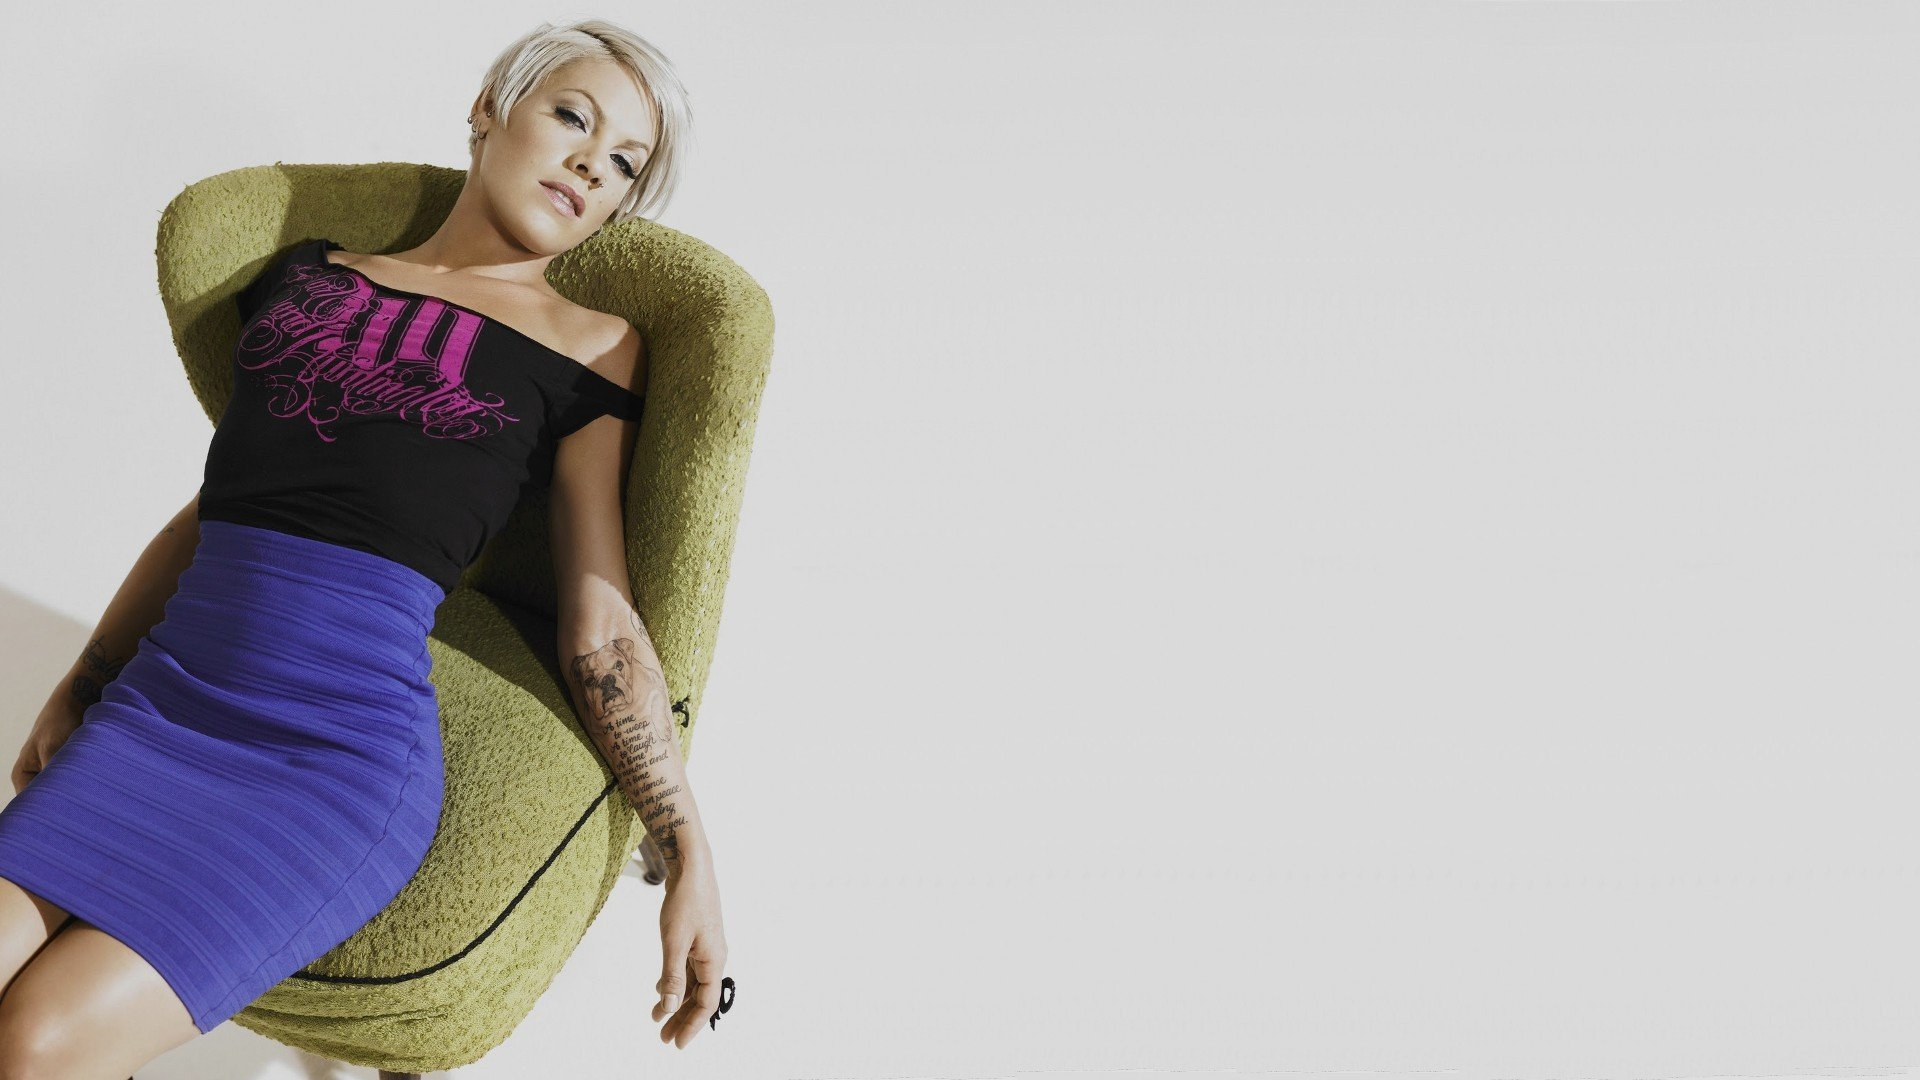 alecia beth desktop wallpaper 54399